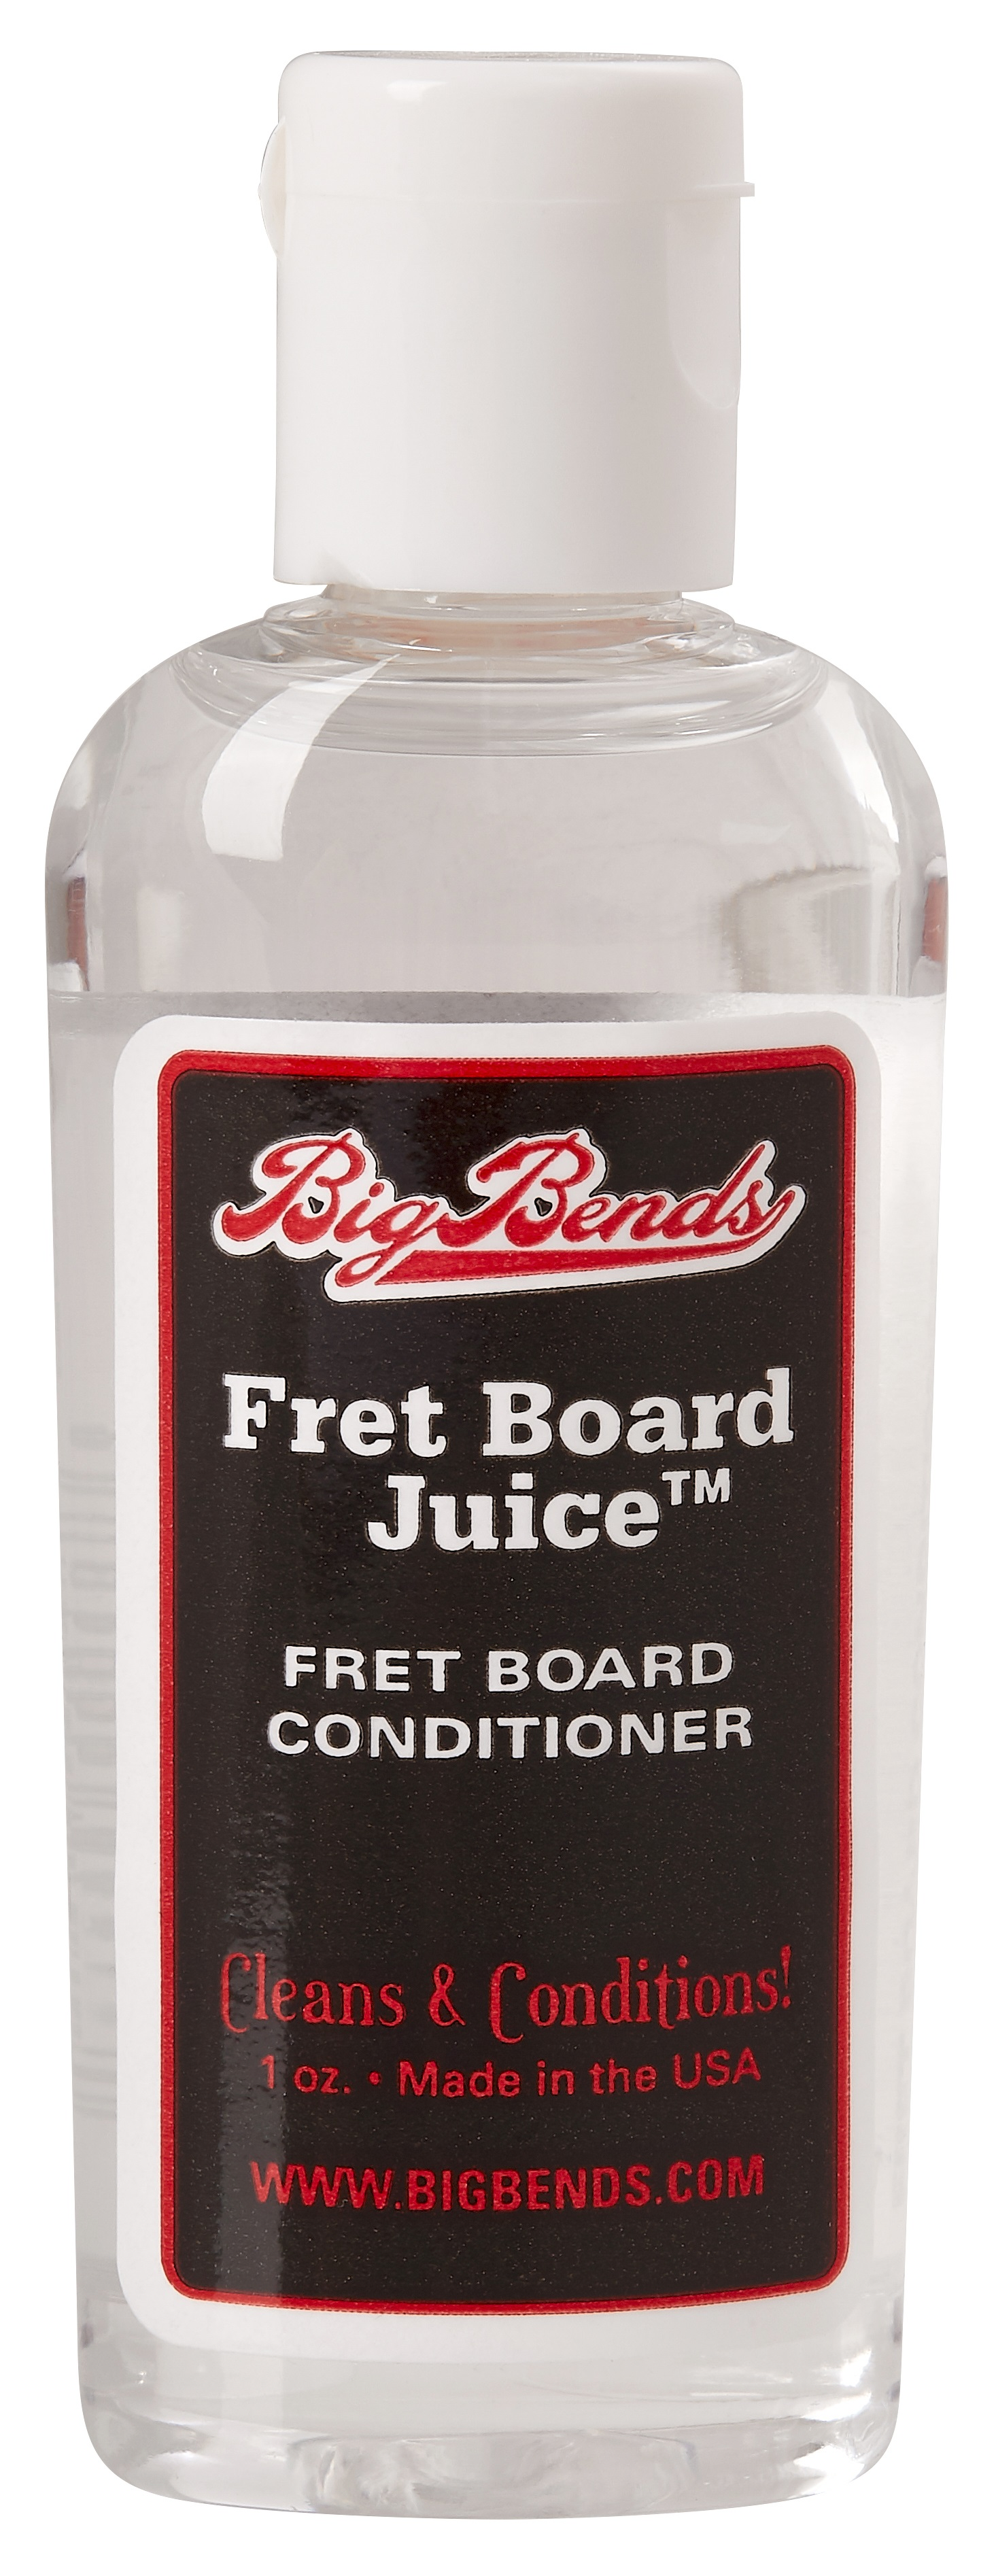 Big Bends Fret Board Juice 1